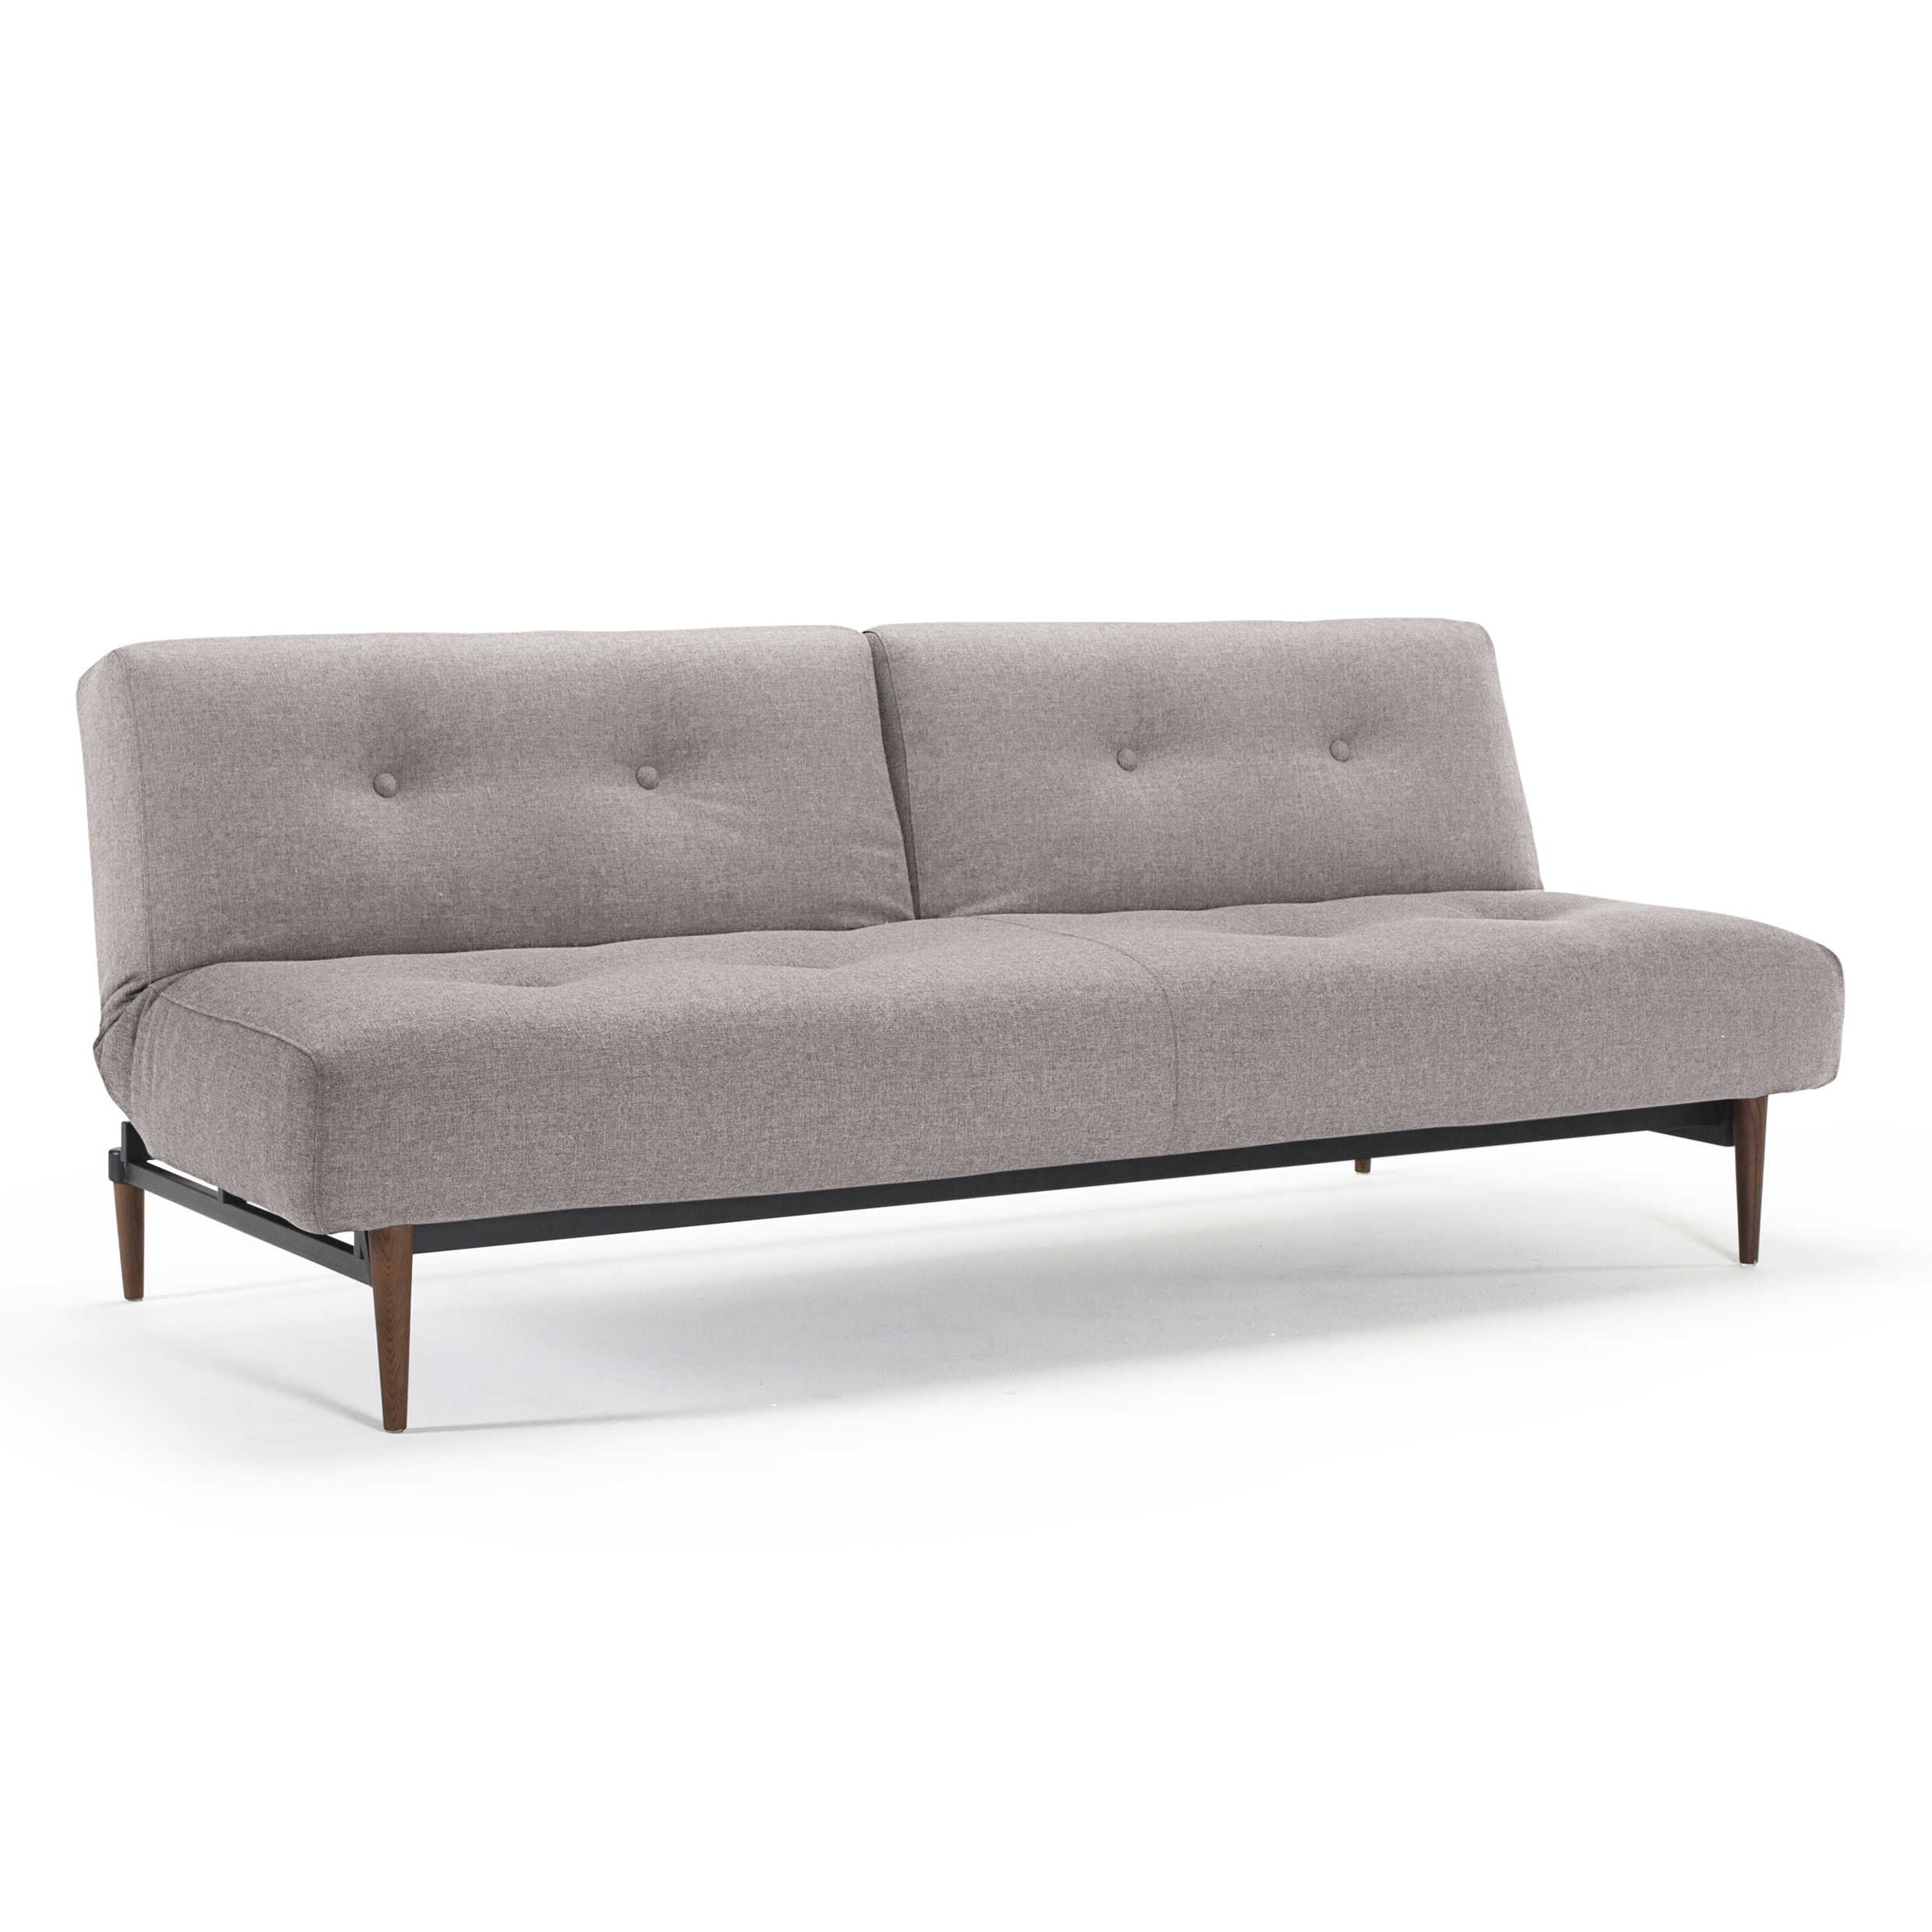 Innovation Schlafsofa Innovation Schlafsofa Buri Styletto Dunkel Grau Stoff